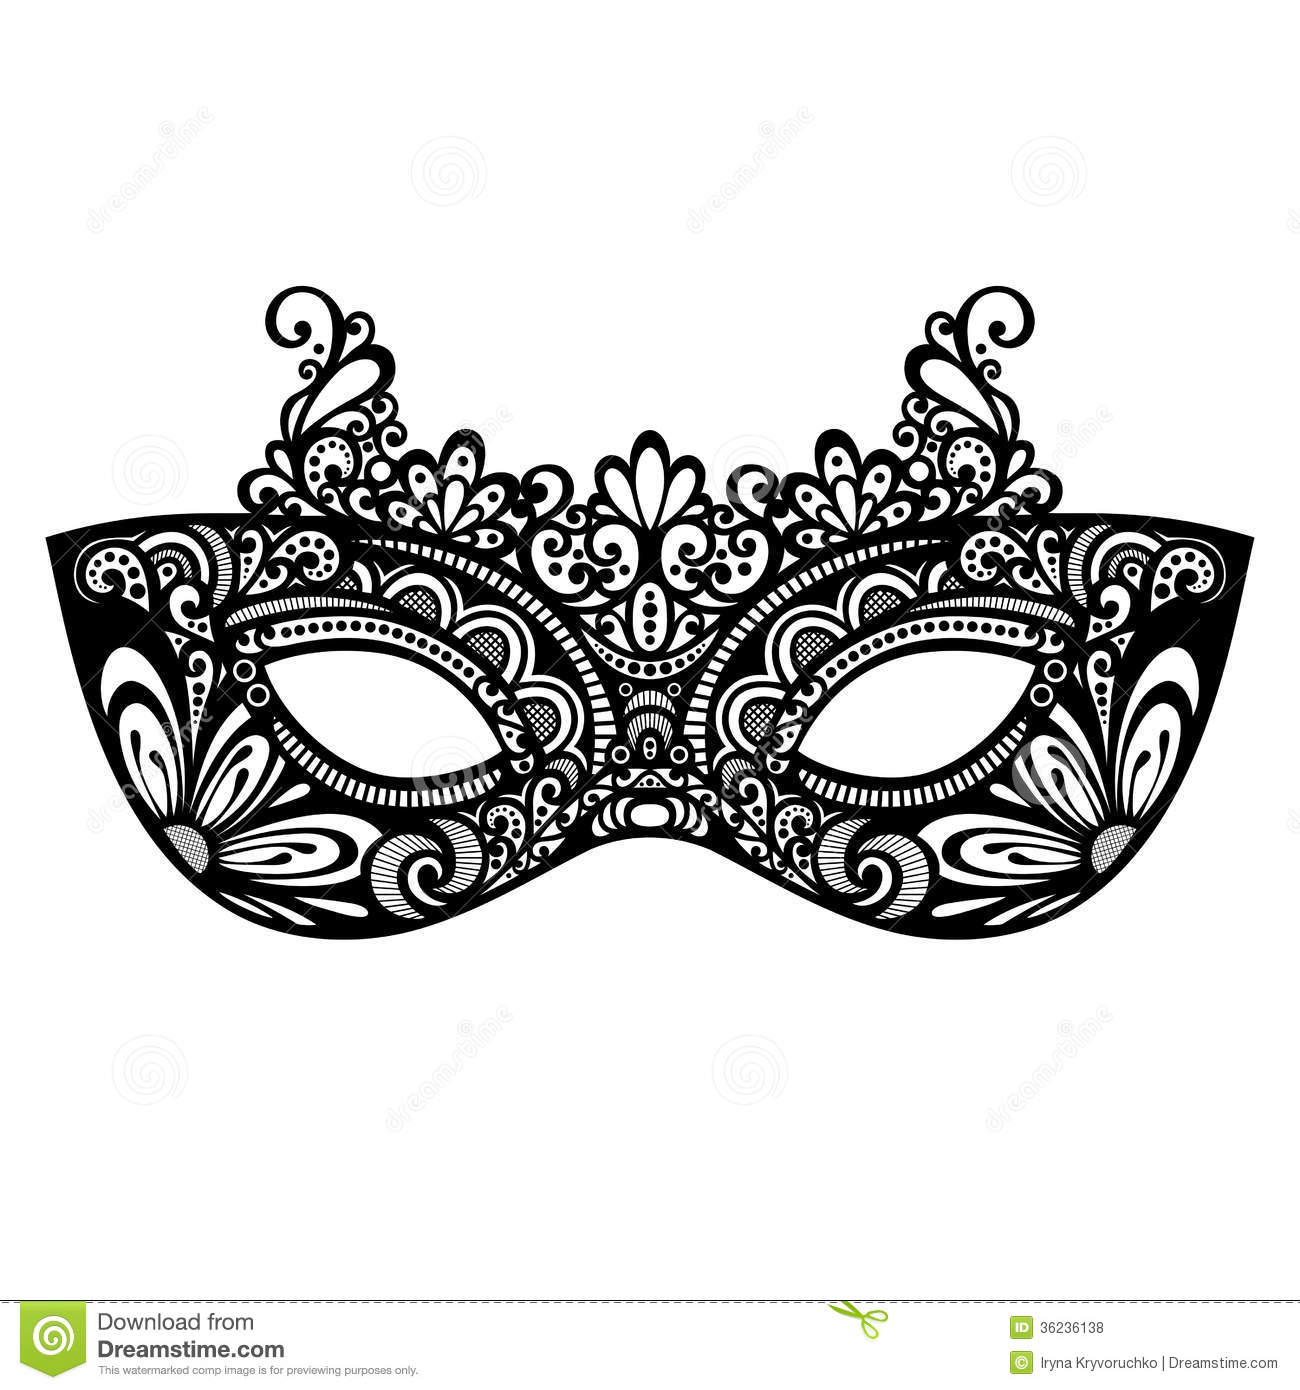 hight resolution of masquerade mask royalty free stock photos image 36236138